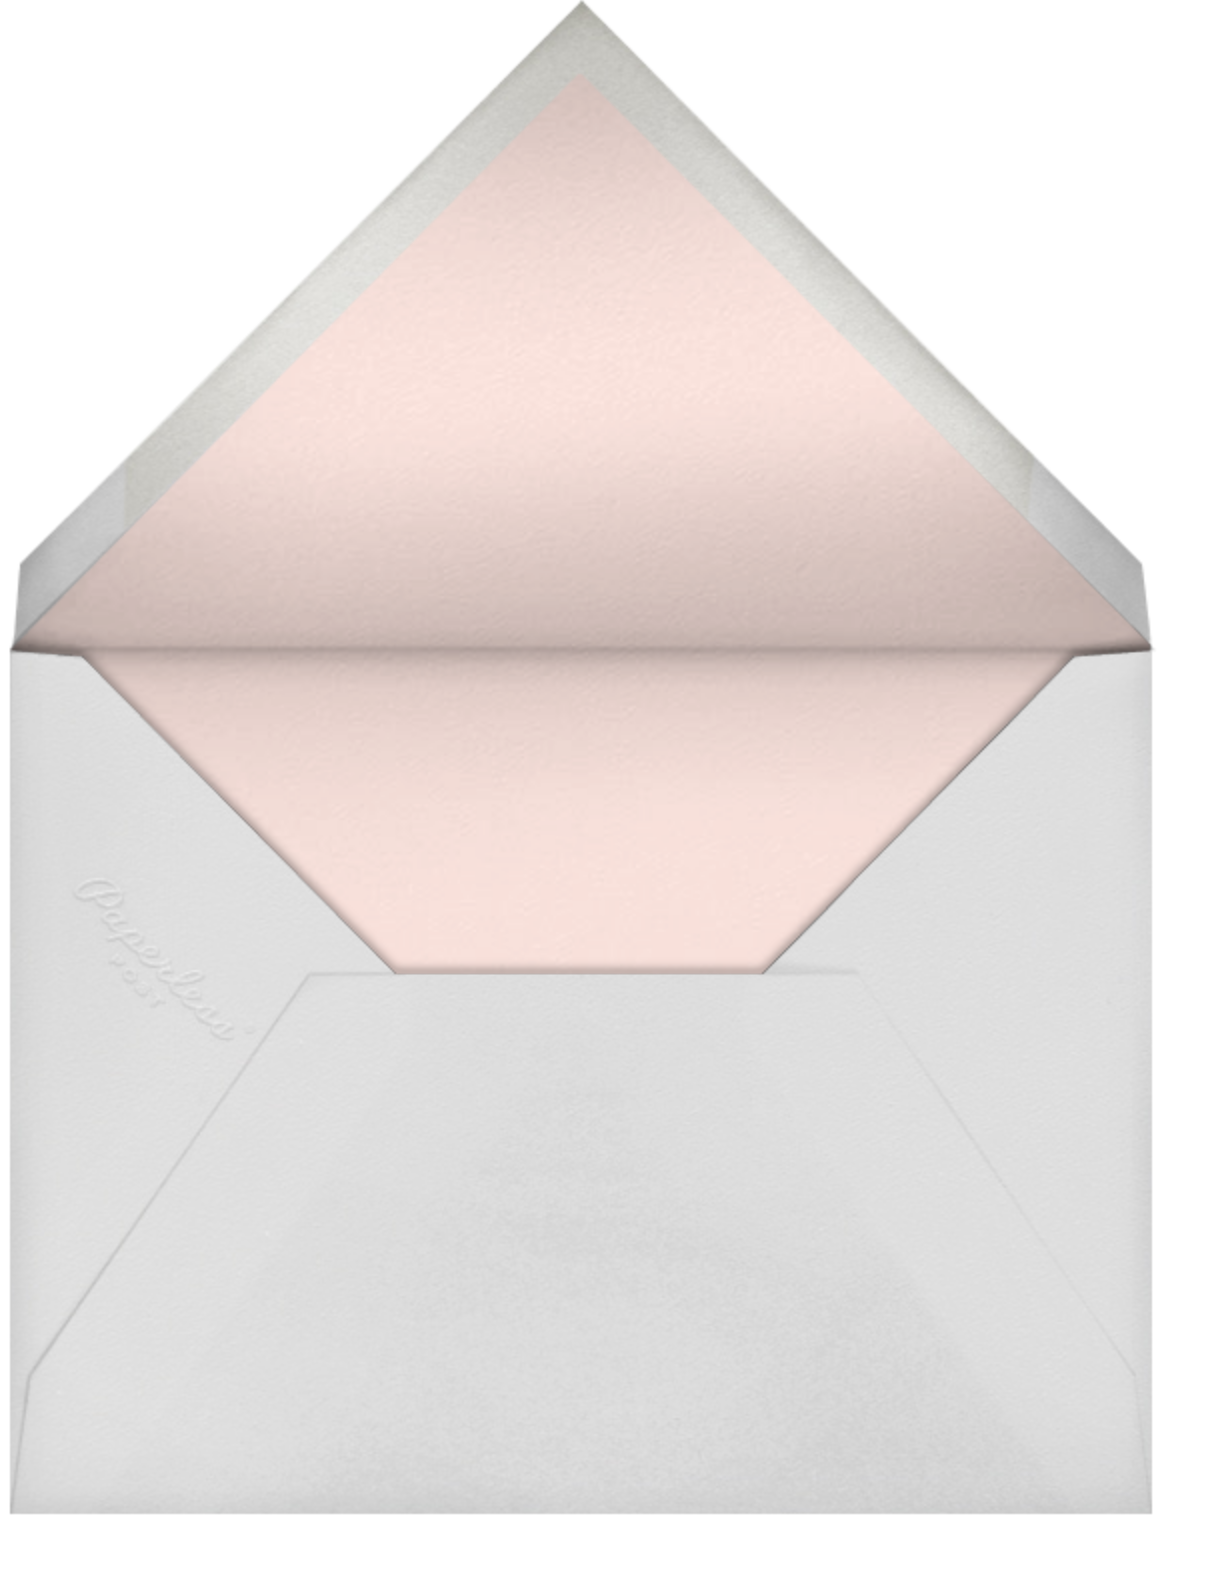 Blossoms on Tulle I Square - Pink - Oscar de la Renta - Bridal shower - envelope back